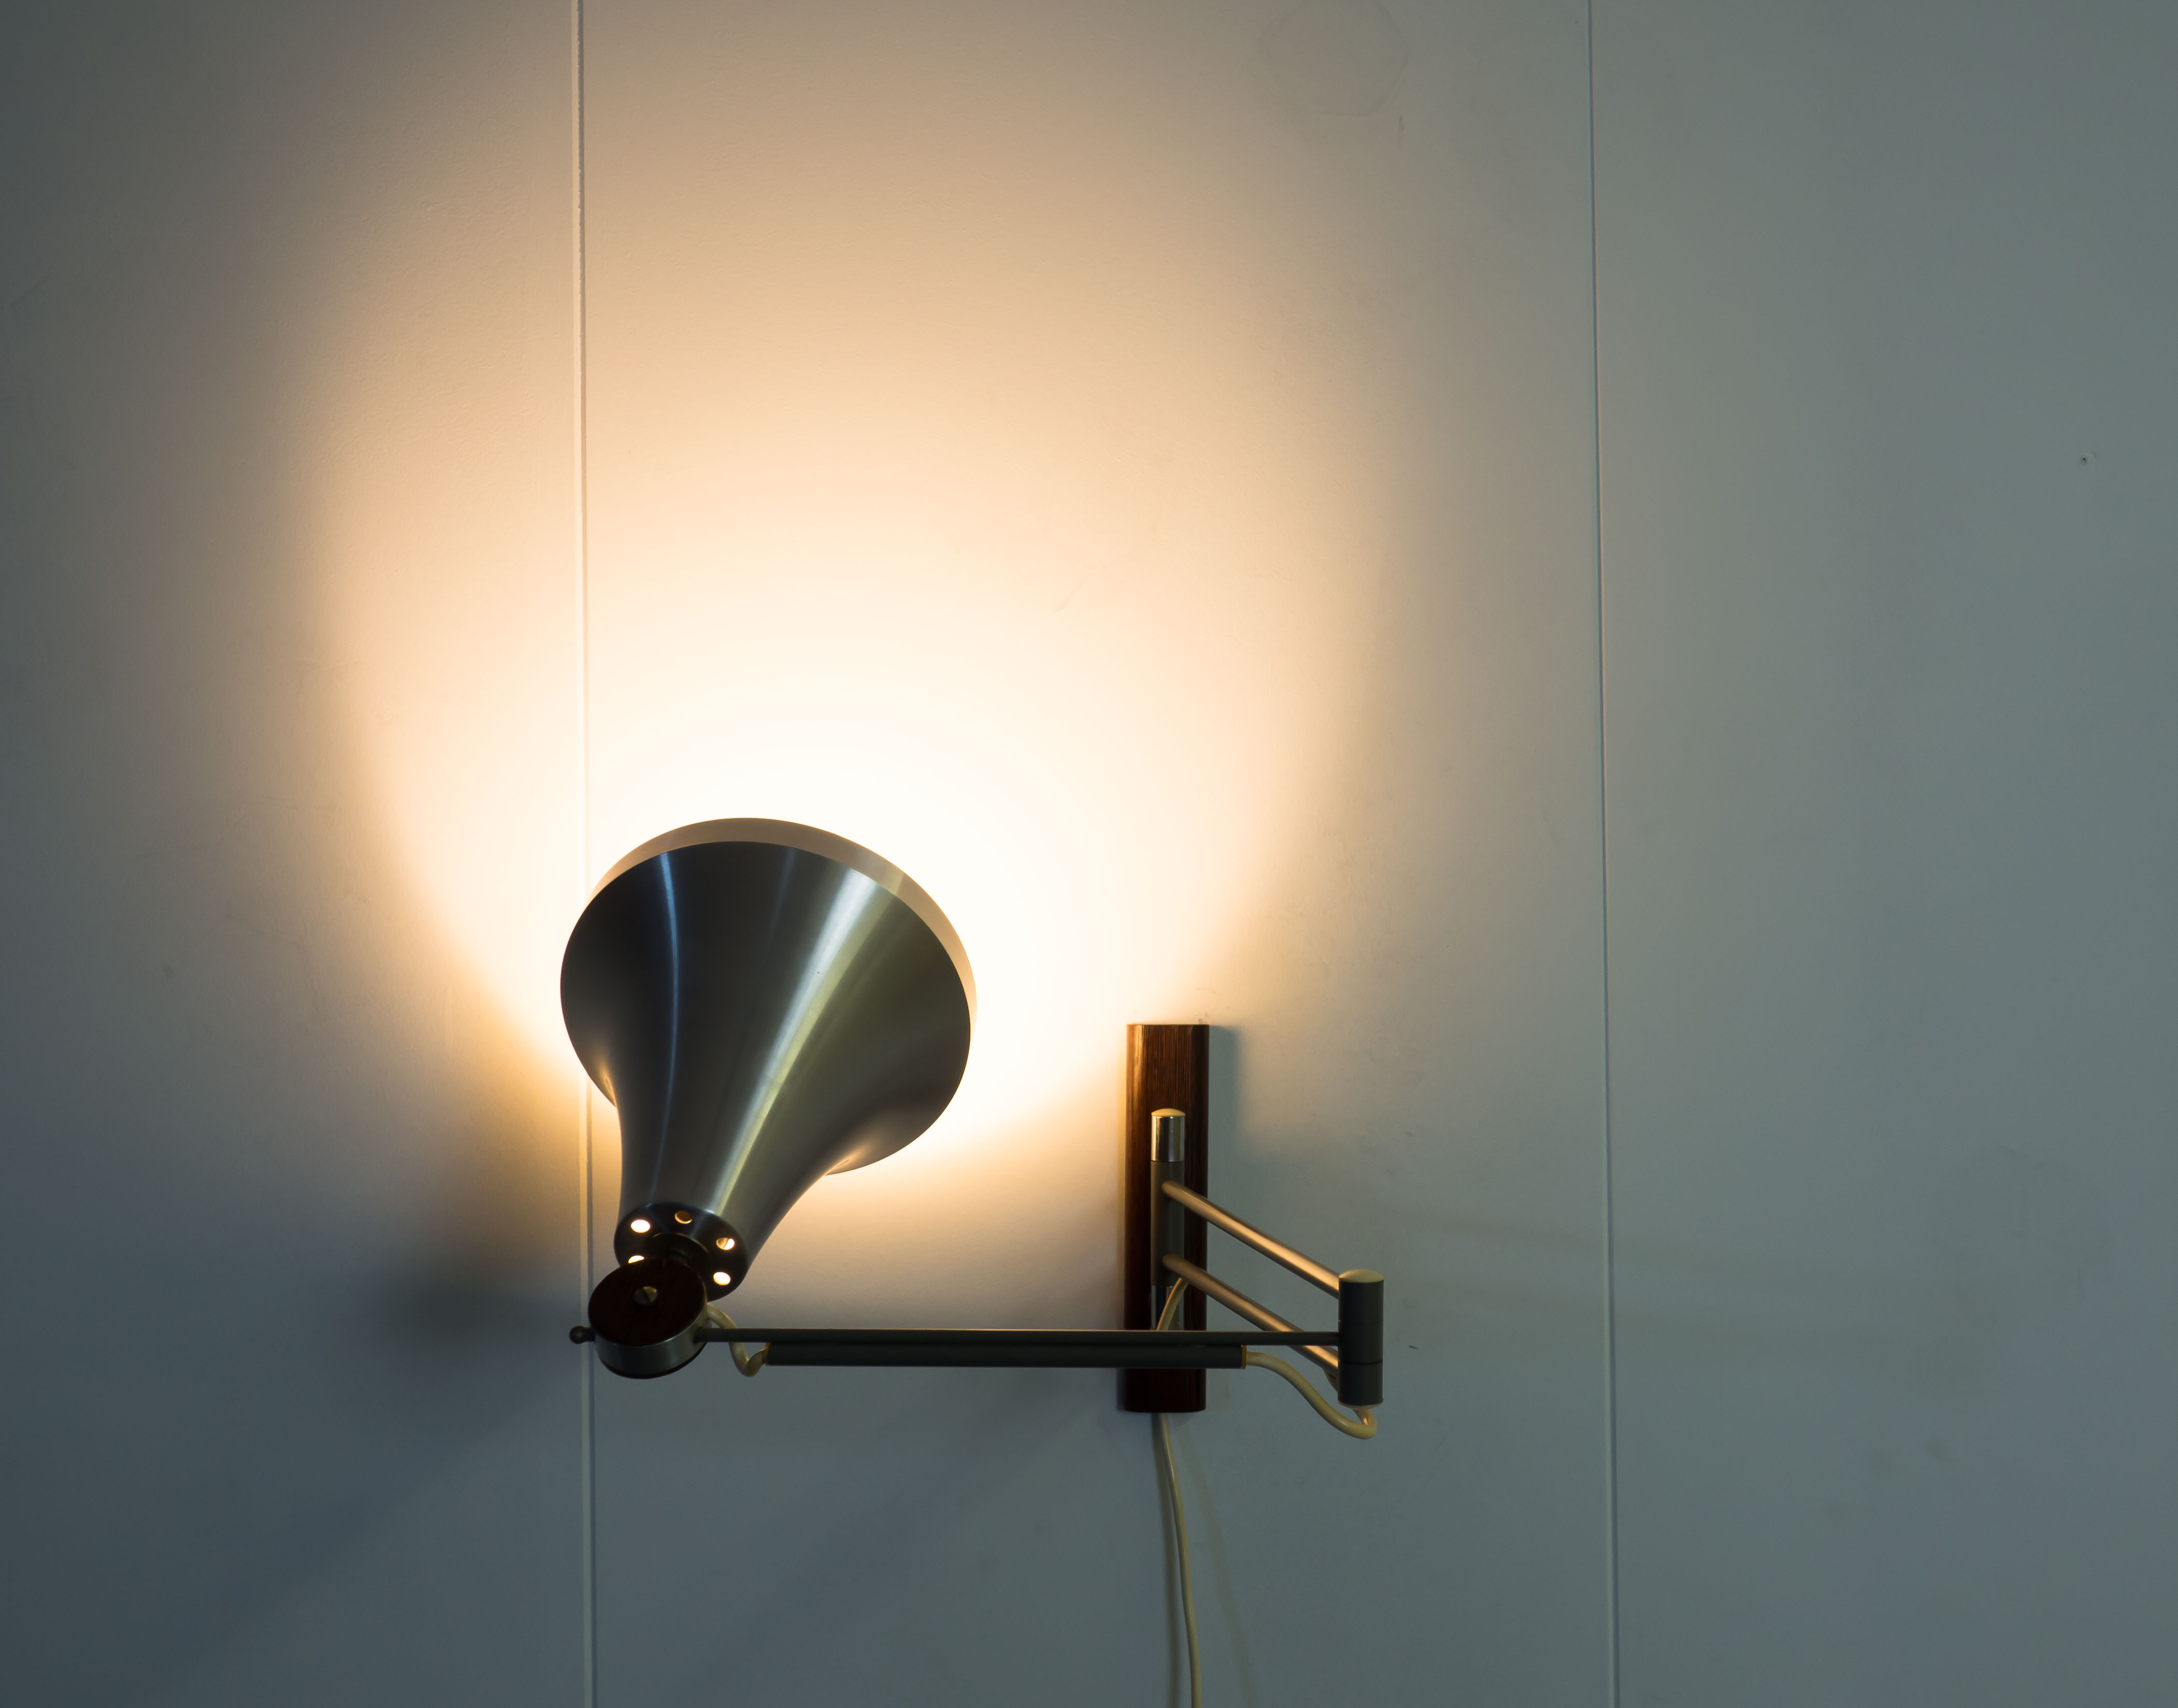 ADJUSTABLE WALL LIGHT – PHILIPS